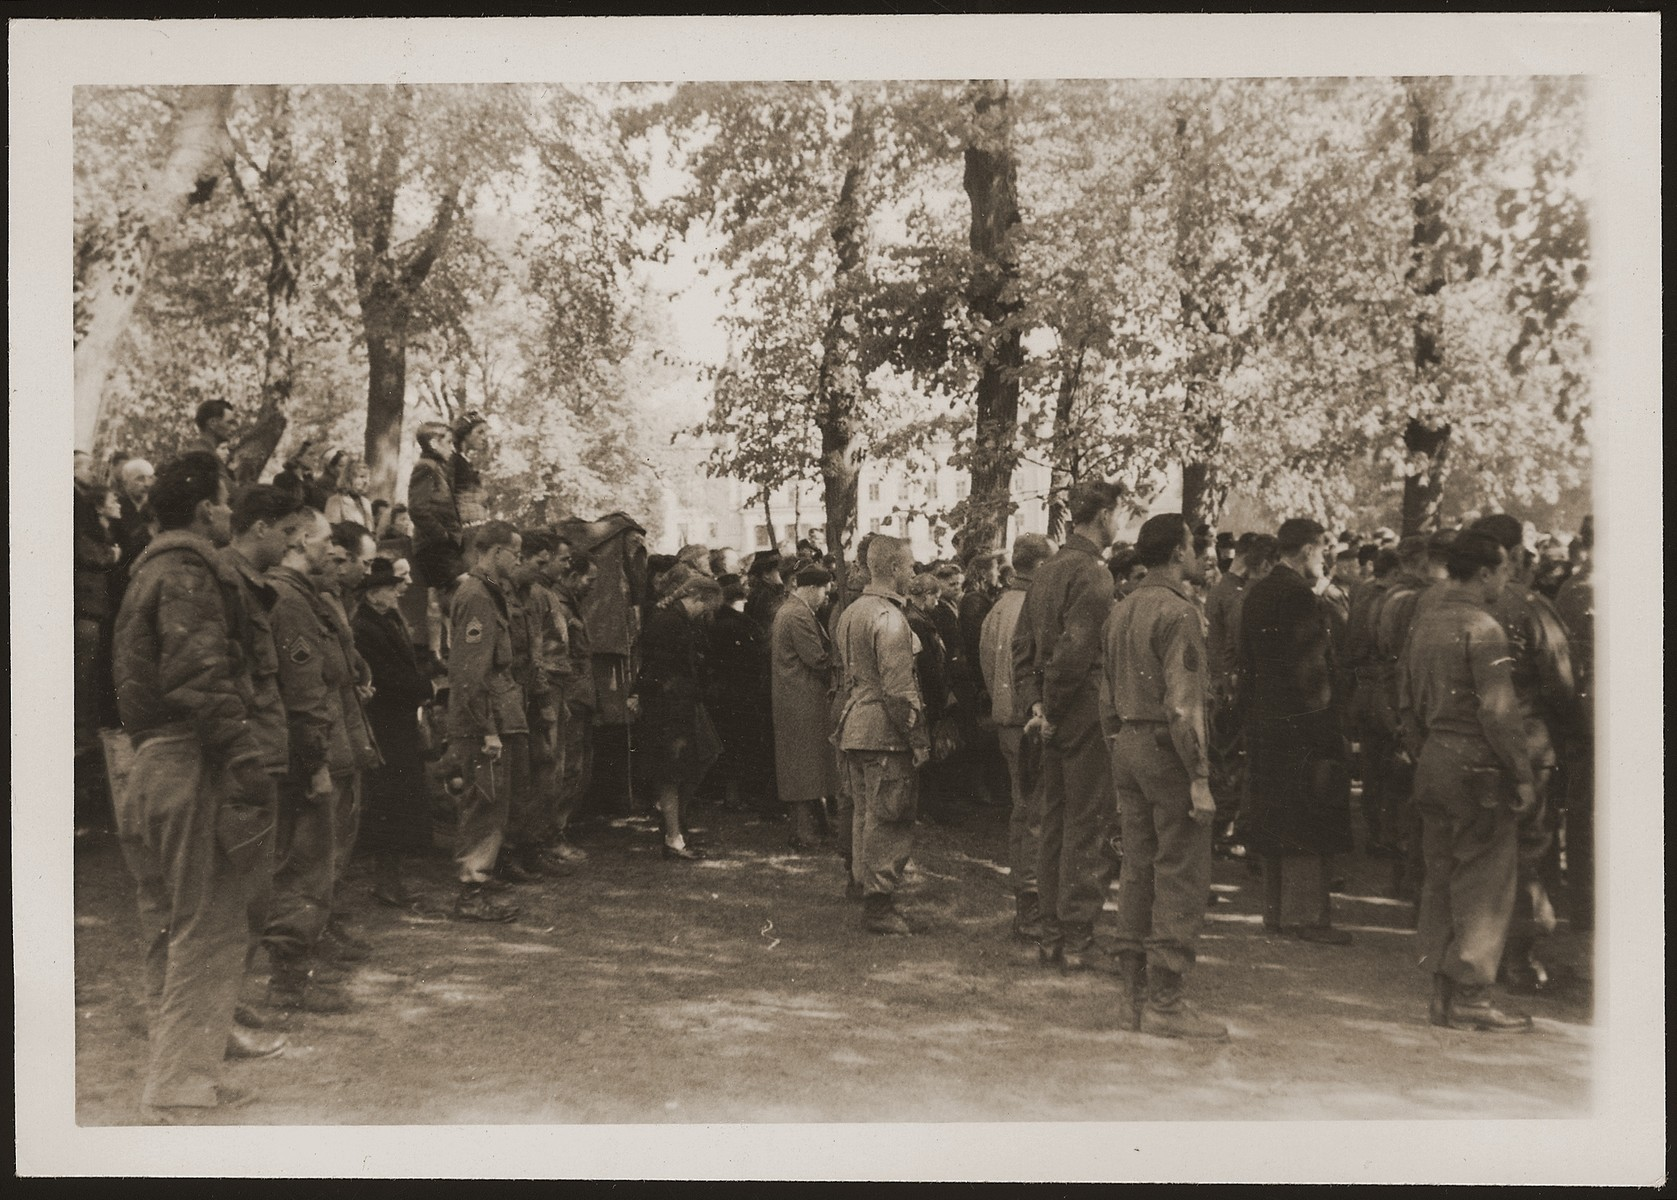 American soldiers at the mass funeral in Ludwigslust on the palace grounds of the Archduke of Mecklenburg, where they forced the townspeople to bury the bodies of prisoners killed in the Woebbelin concentration camp.